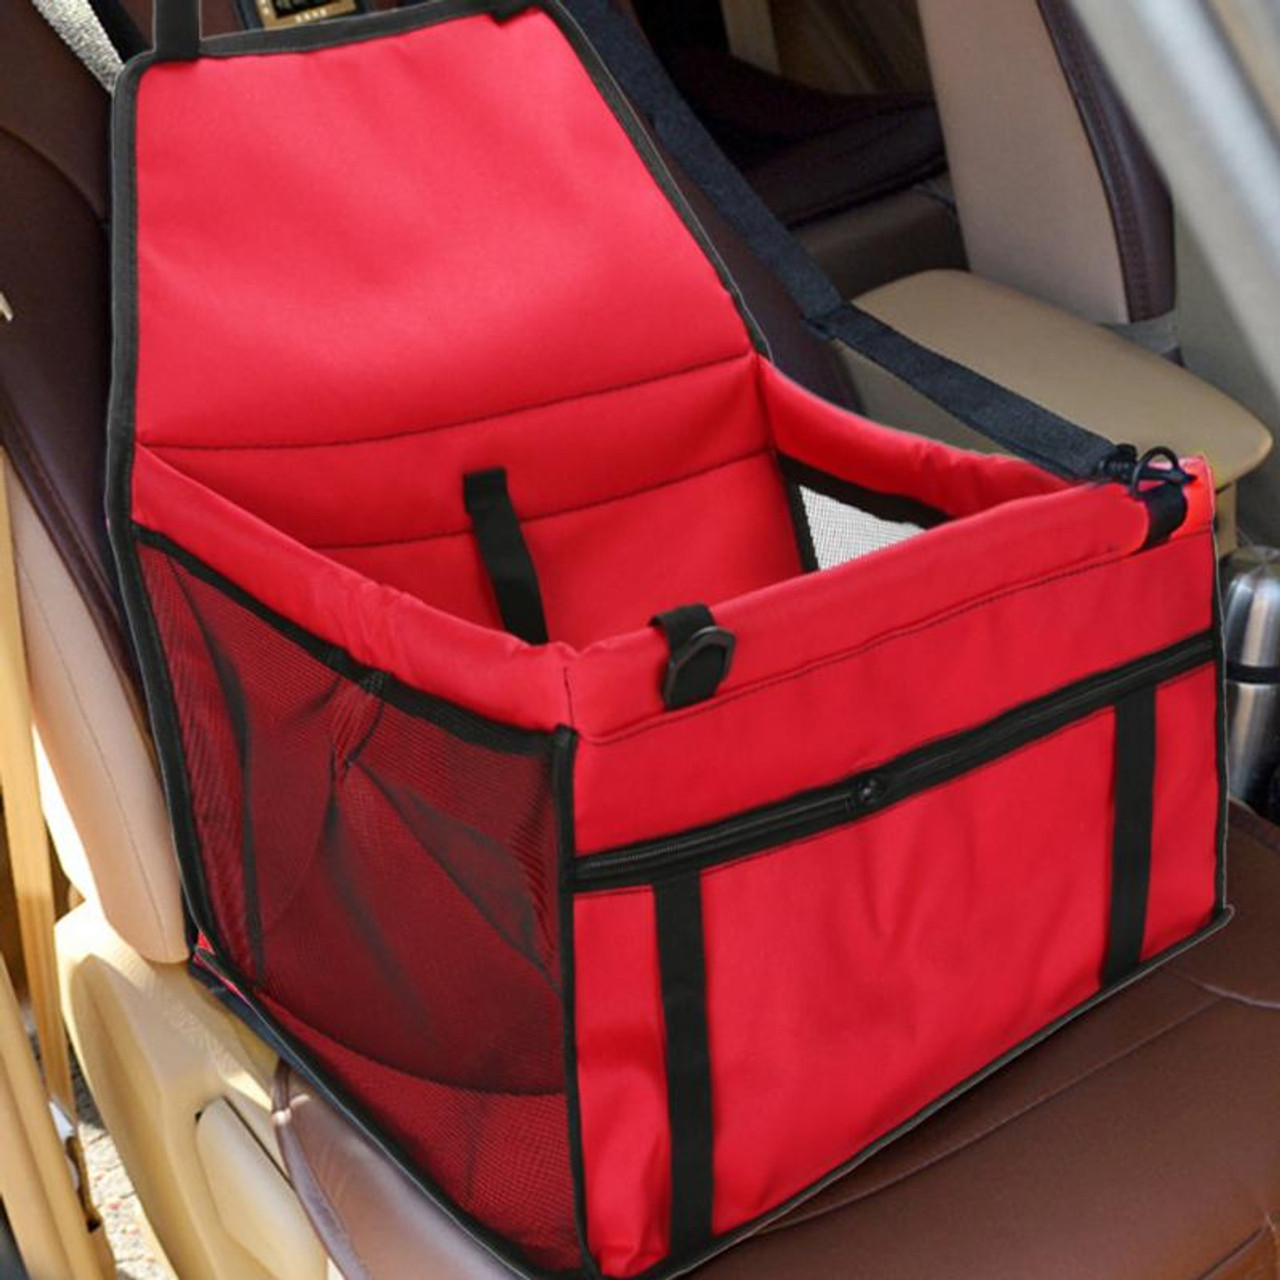 efb83beb2af2 Red Cat Carring Pet Car Seat Cover Waterproof Travel Bag for Small Dog  Puppy Cats Carrying